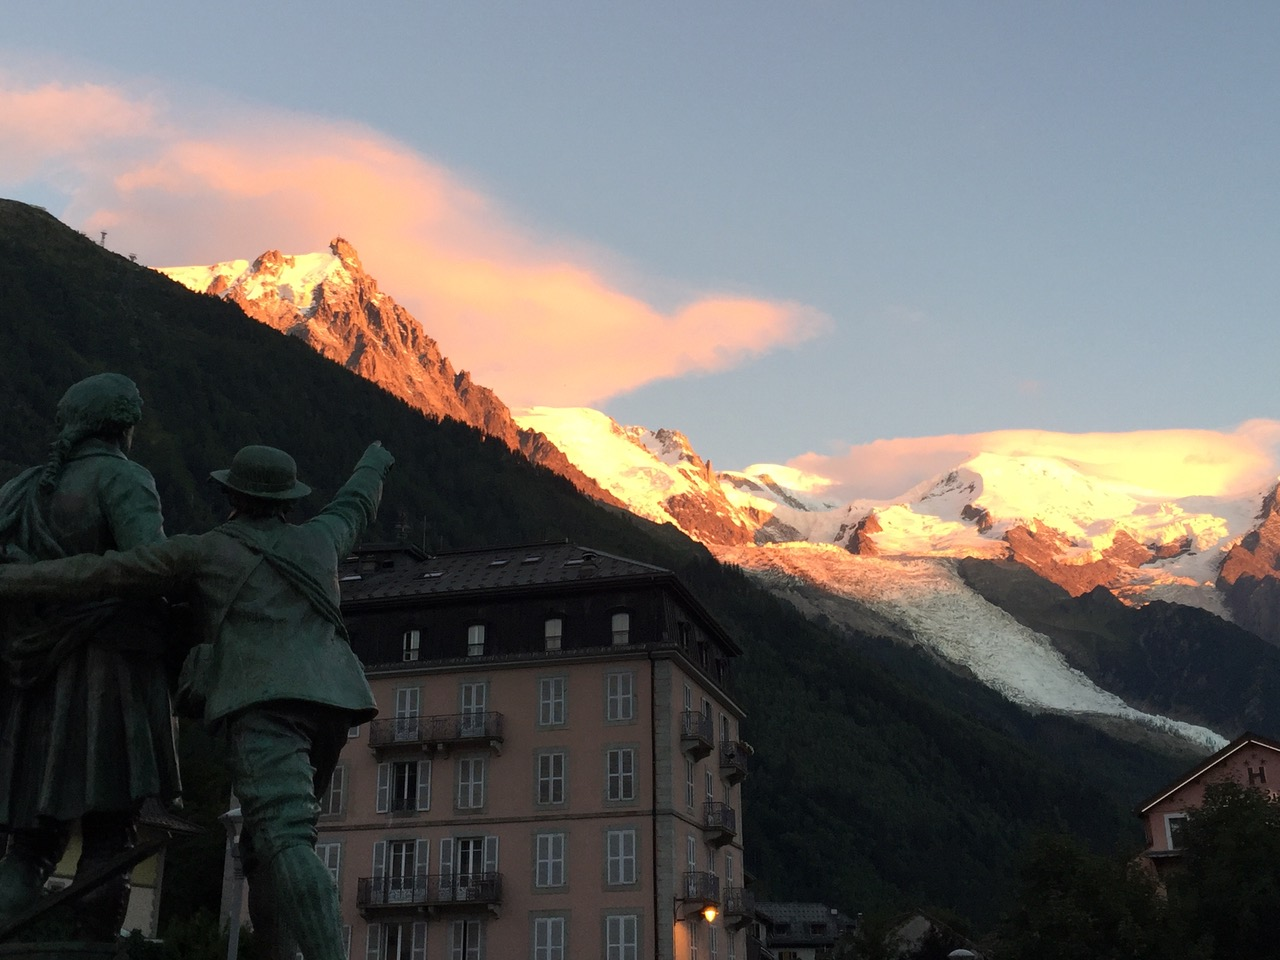 Statue pointing in the center of Chamonix, France.